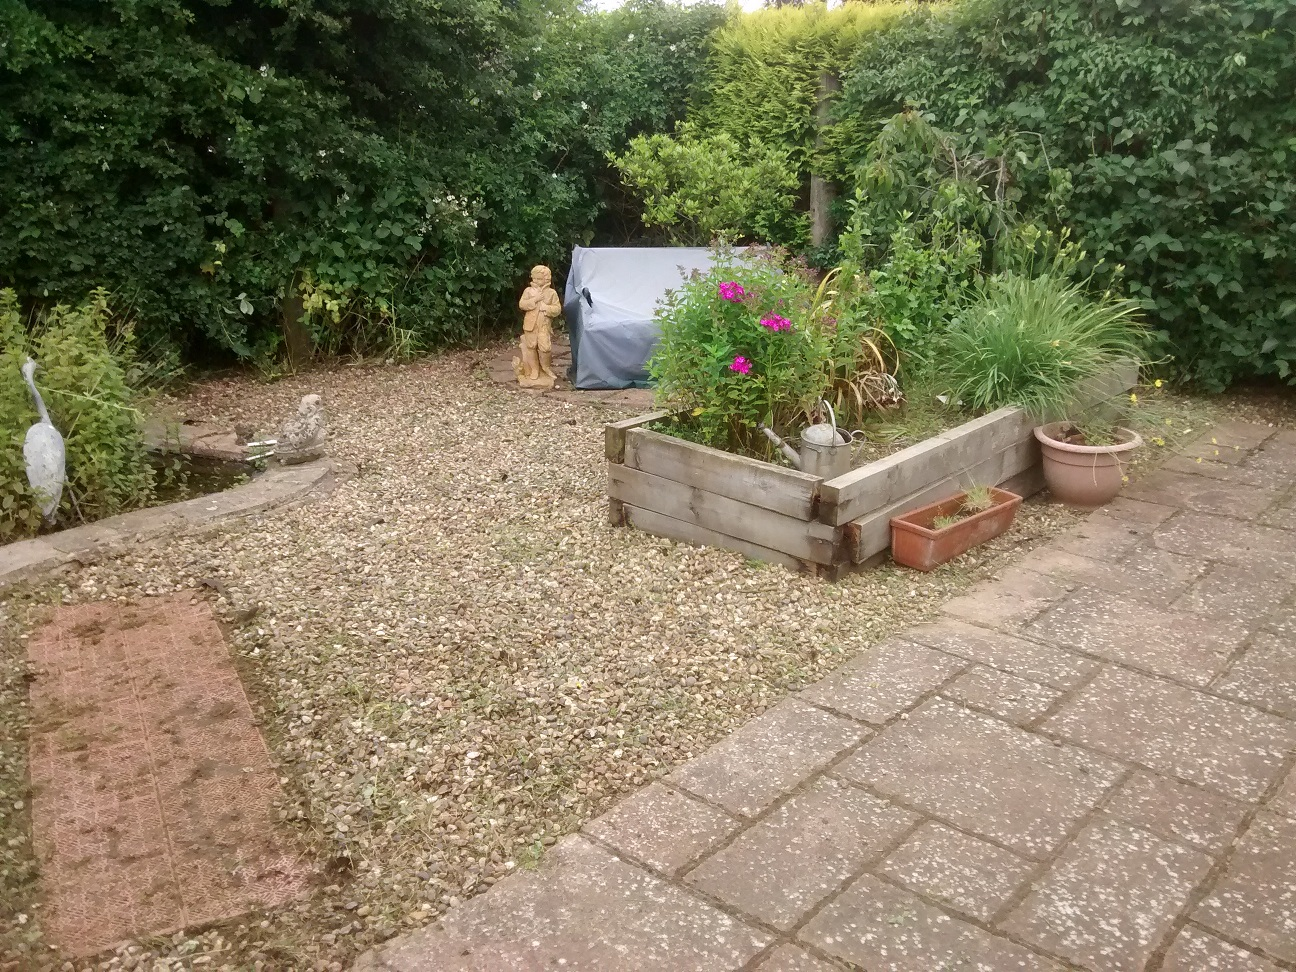 back garden cleared and weeded